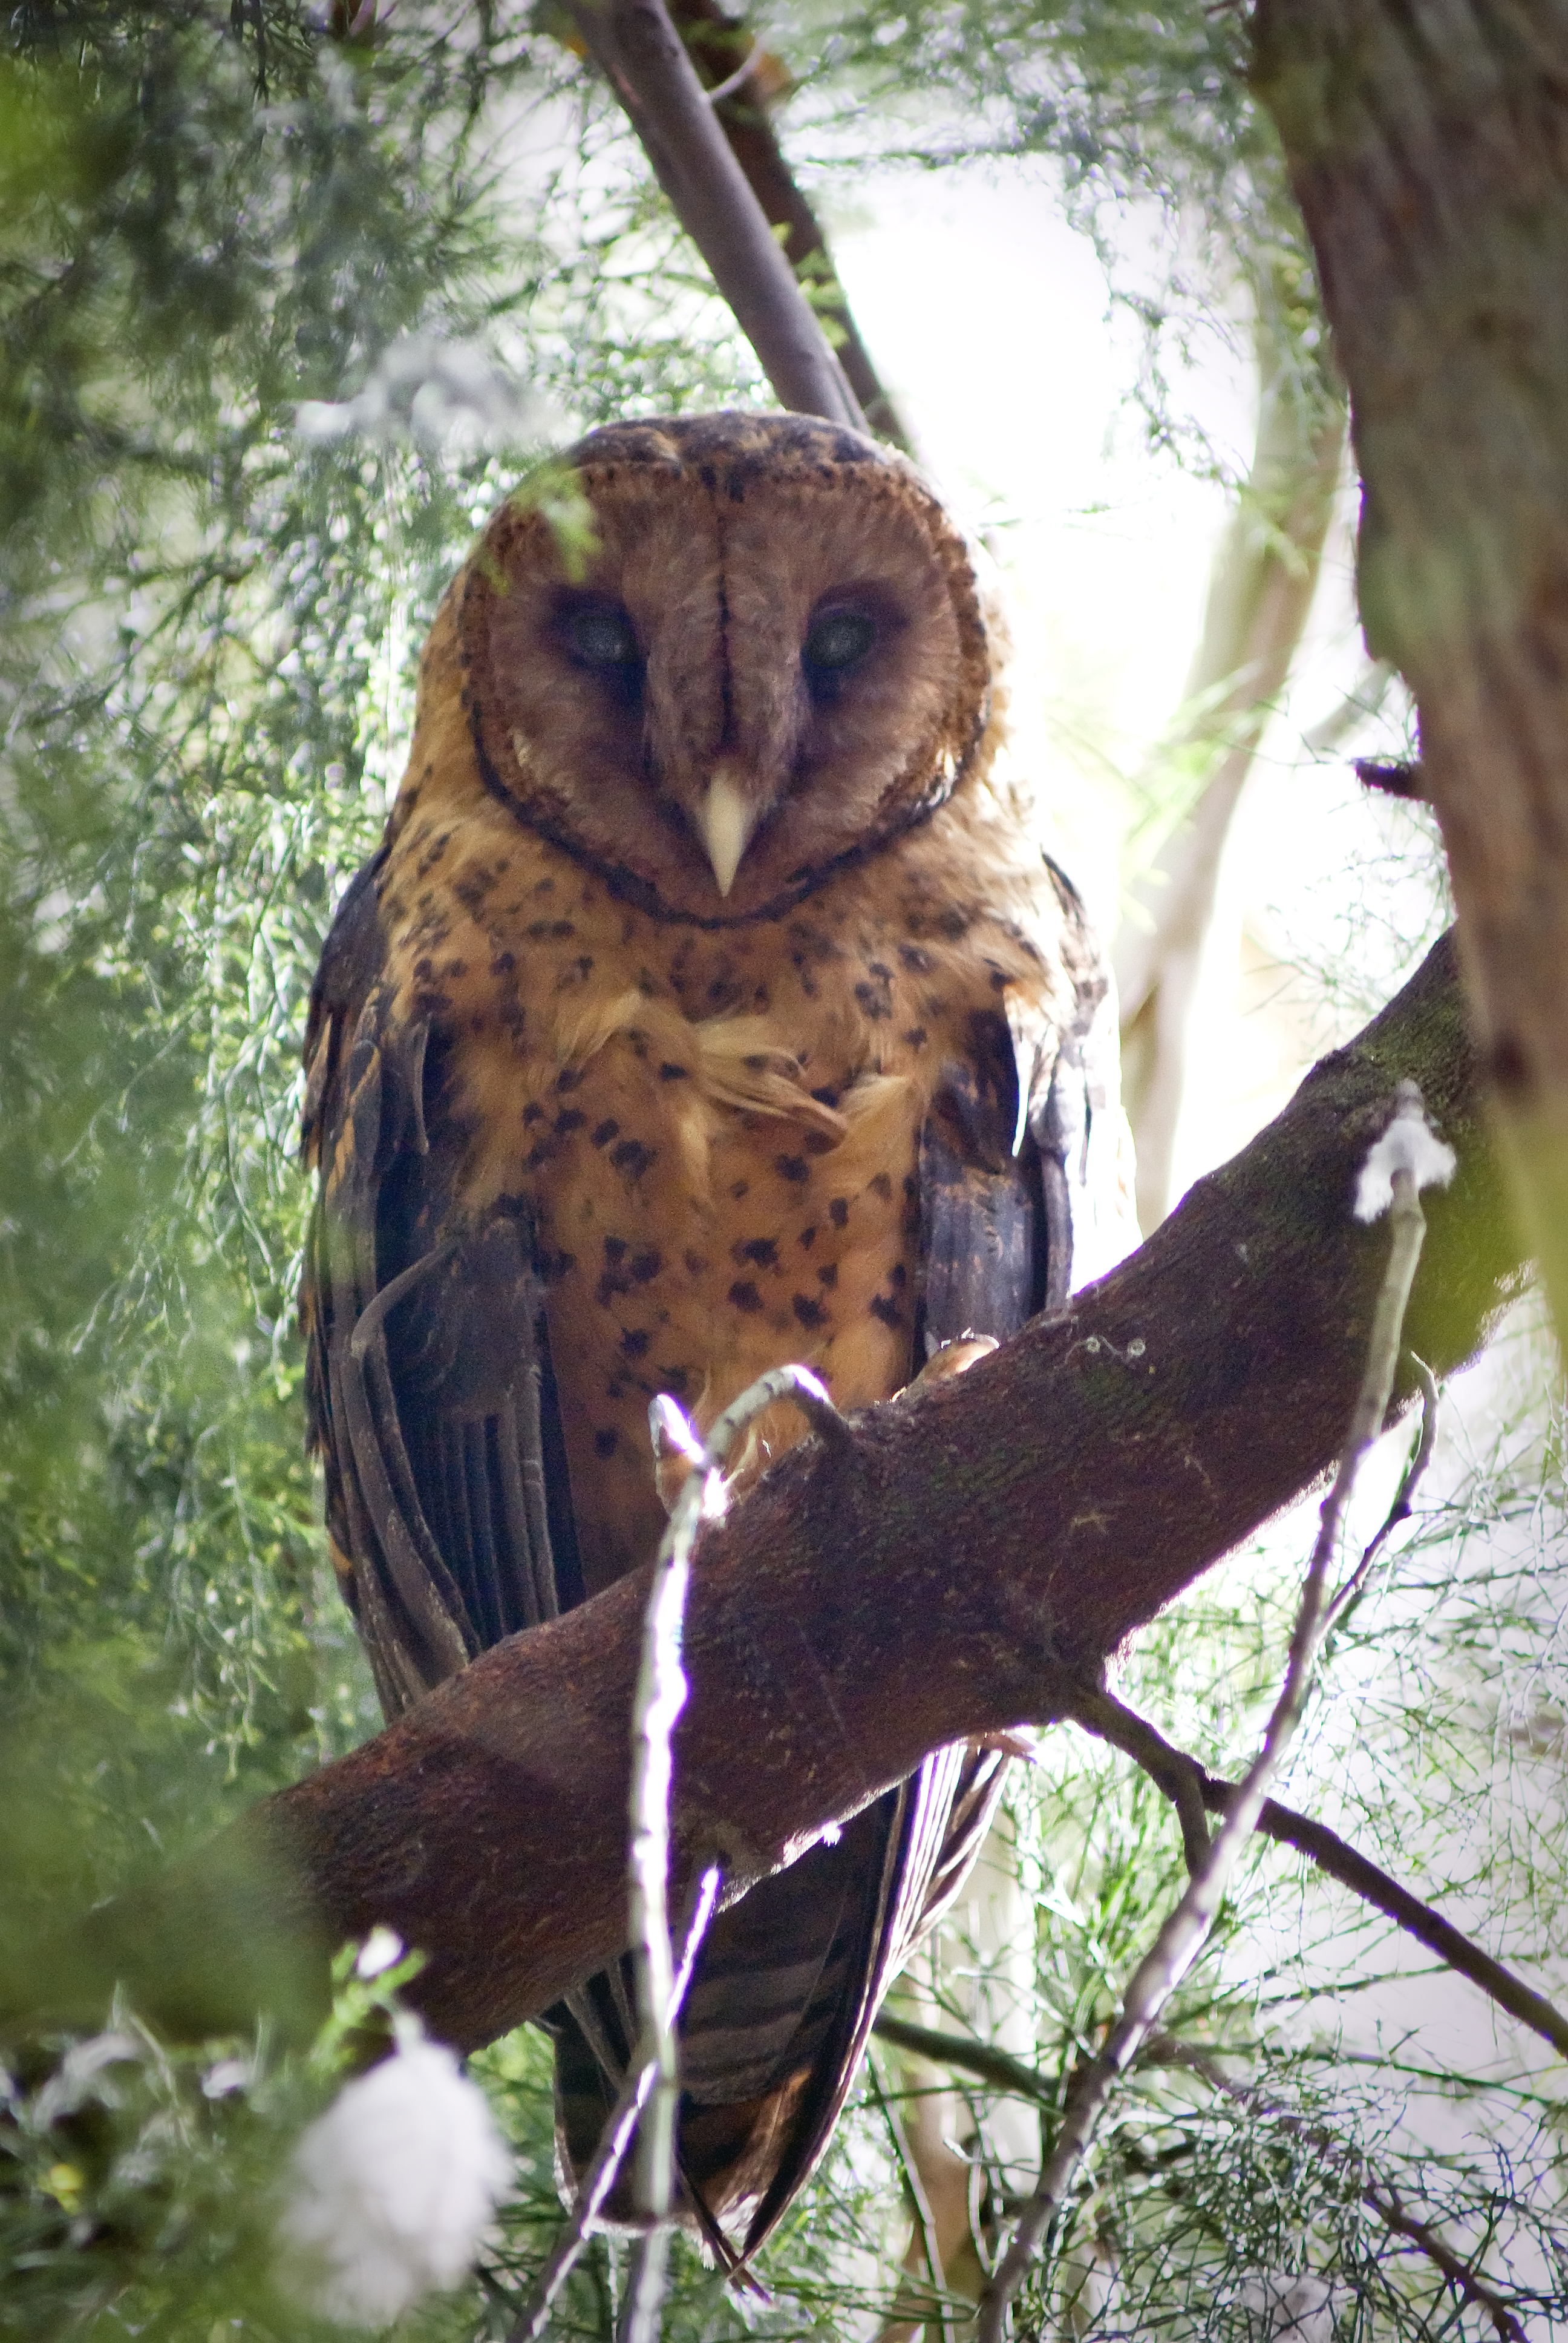 The_Tasmanian_Masked_Owl_is_a_raptor_impacted_by_these_rodenticides_(photo_by_Phil_Milner).jpg